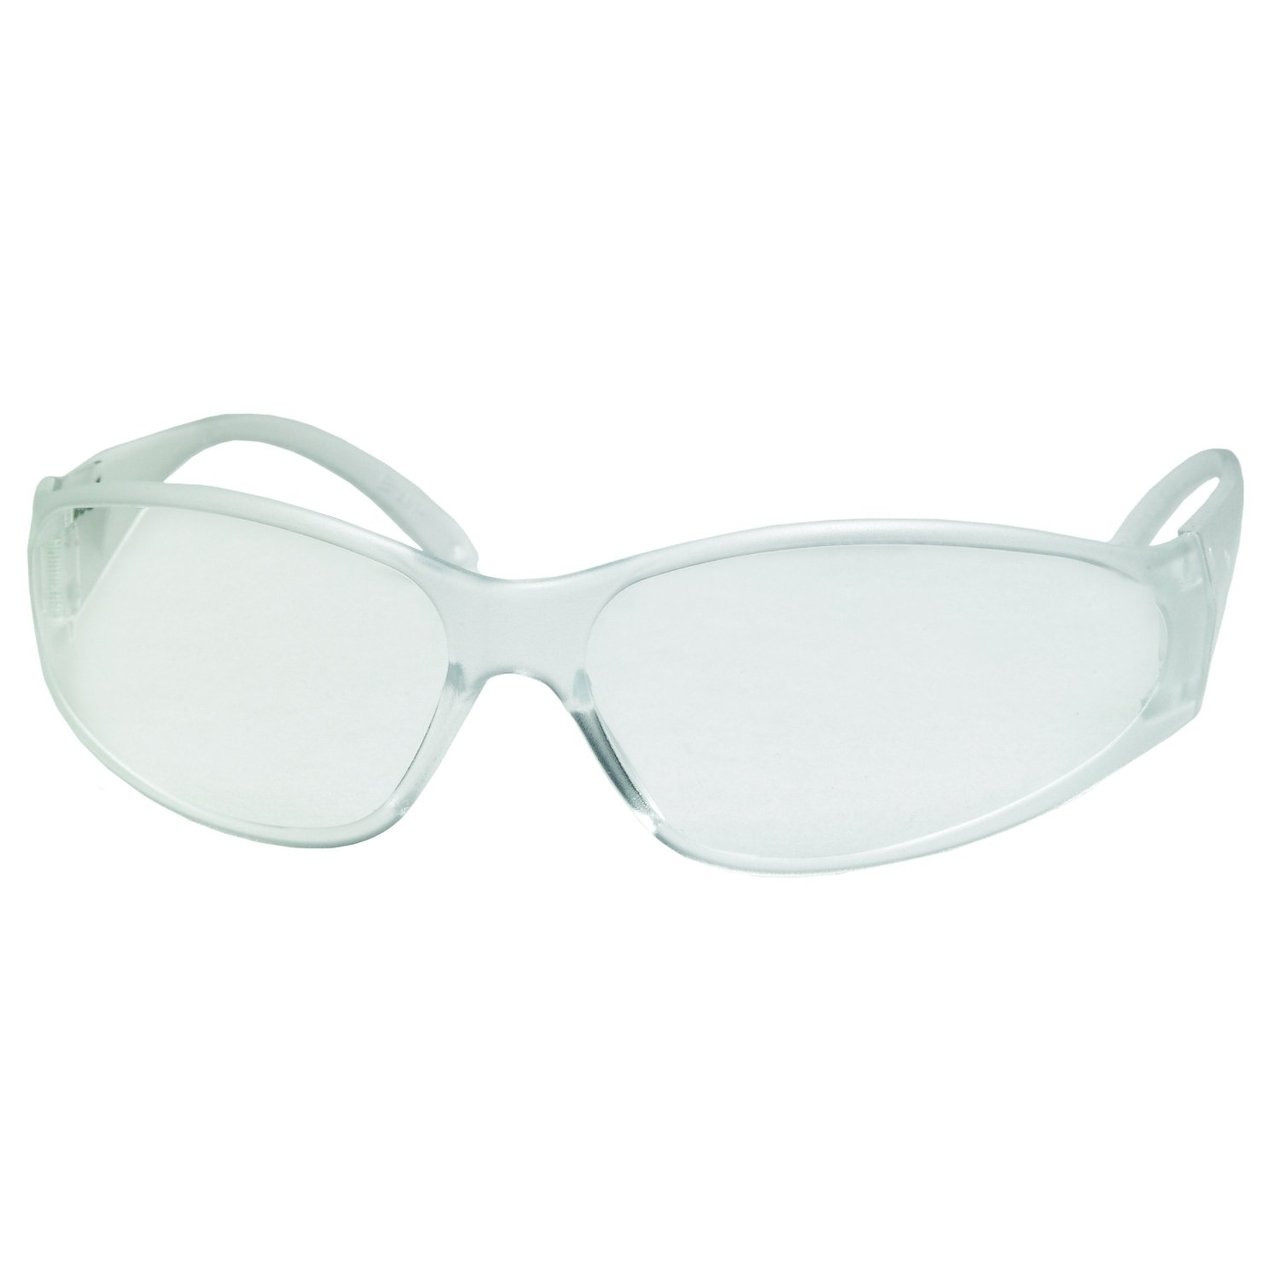 ERB-15284 Boas® Safety Glasses, Clear